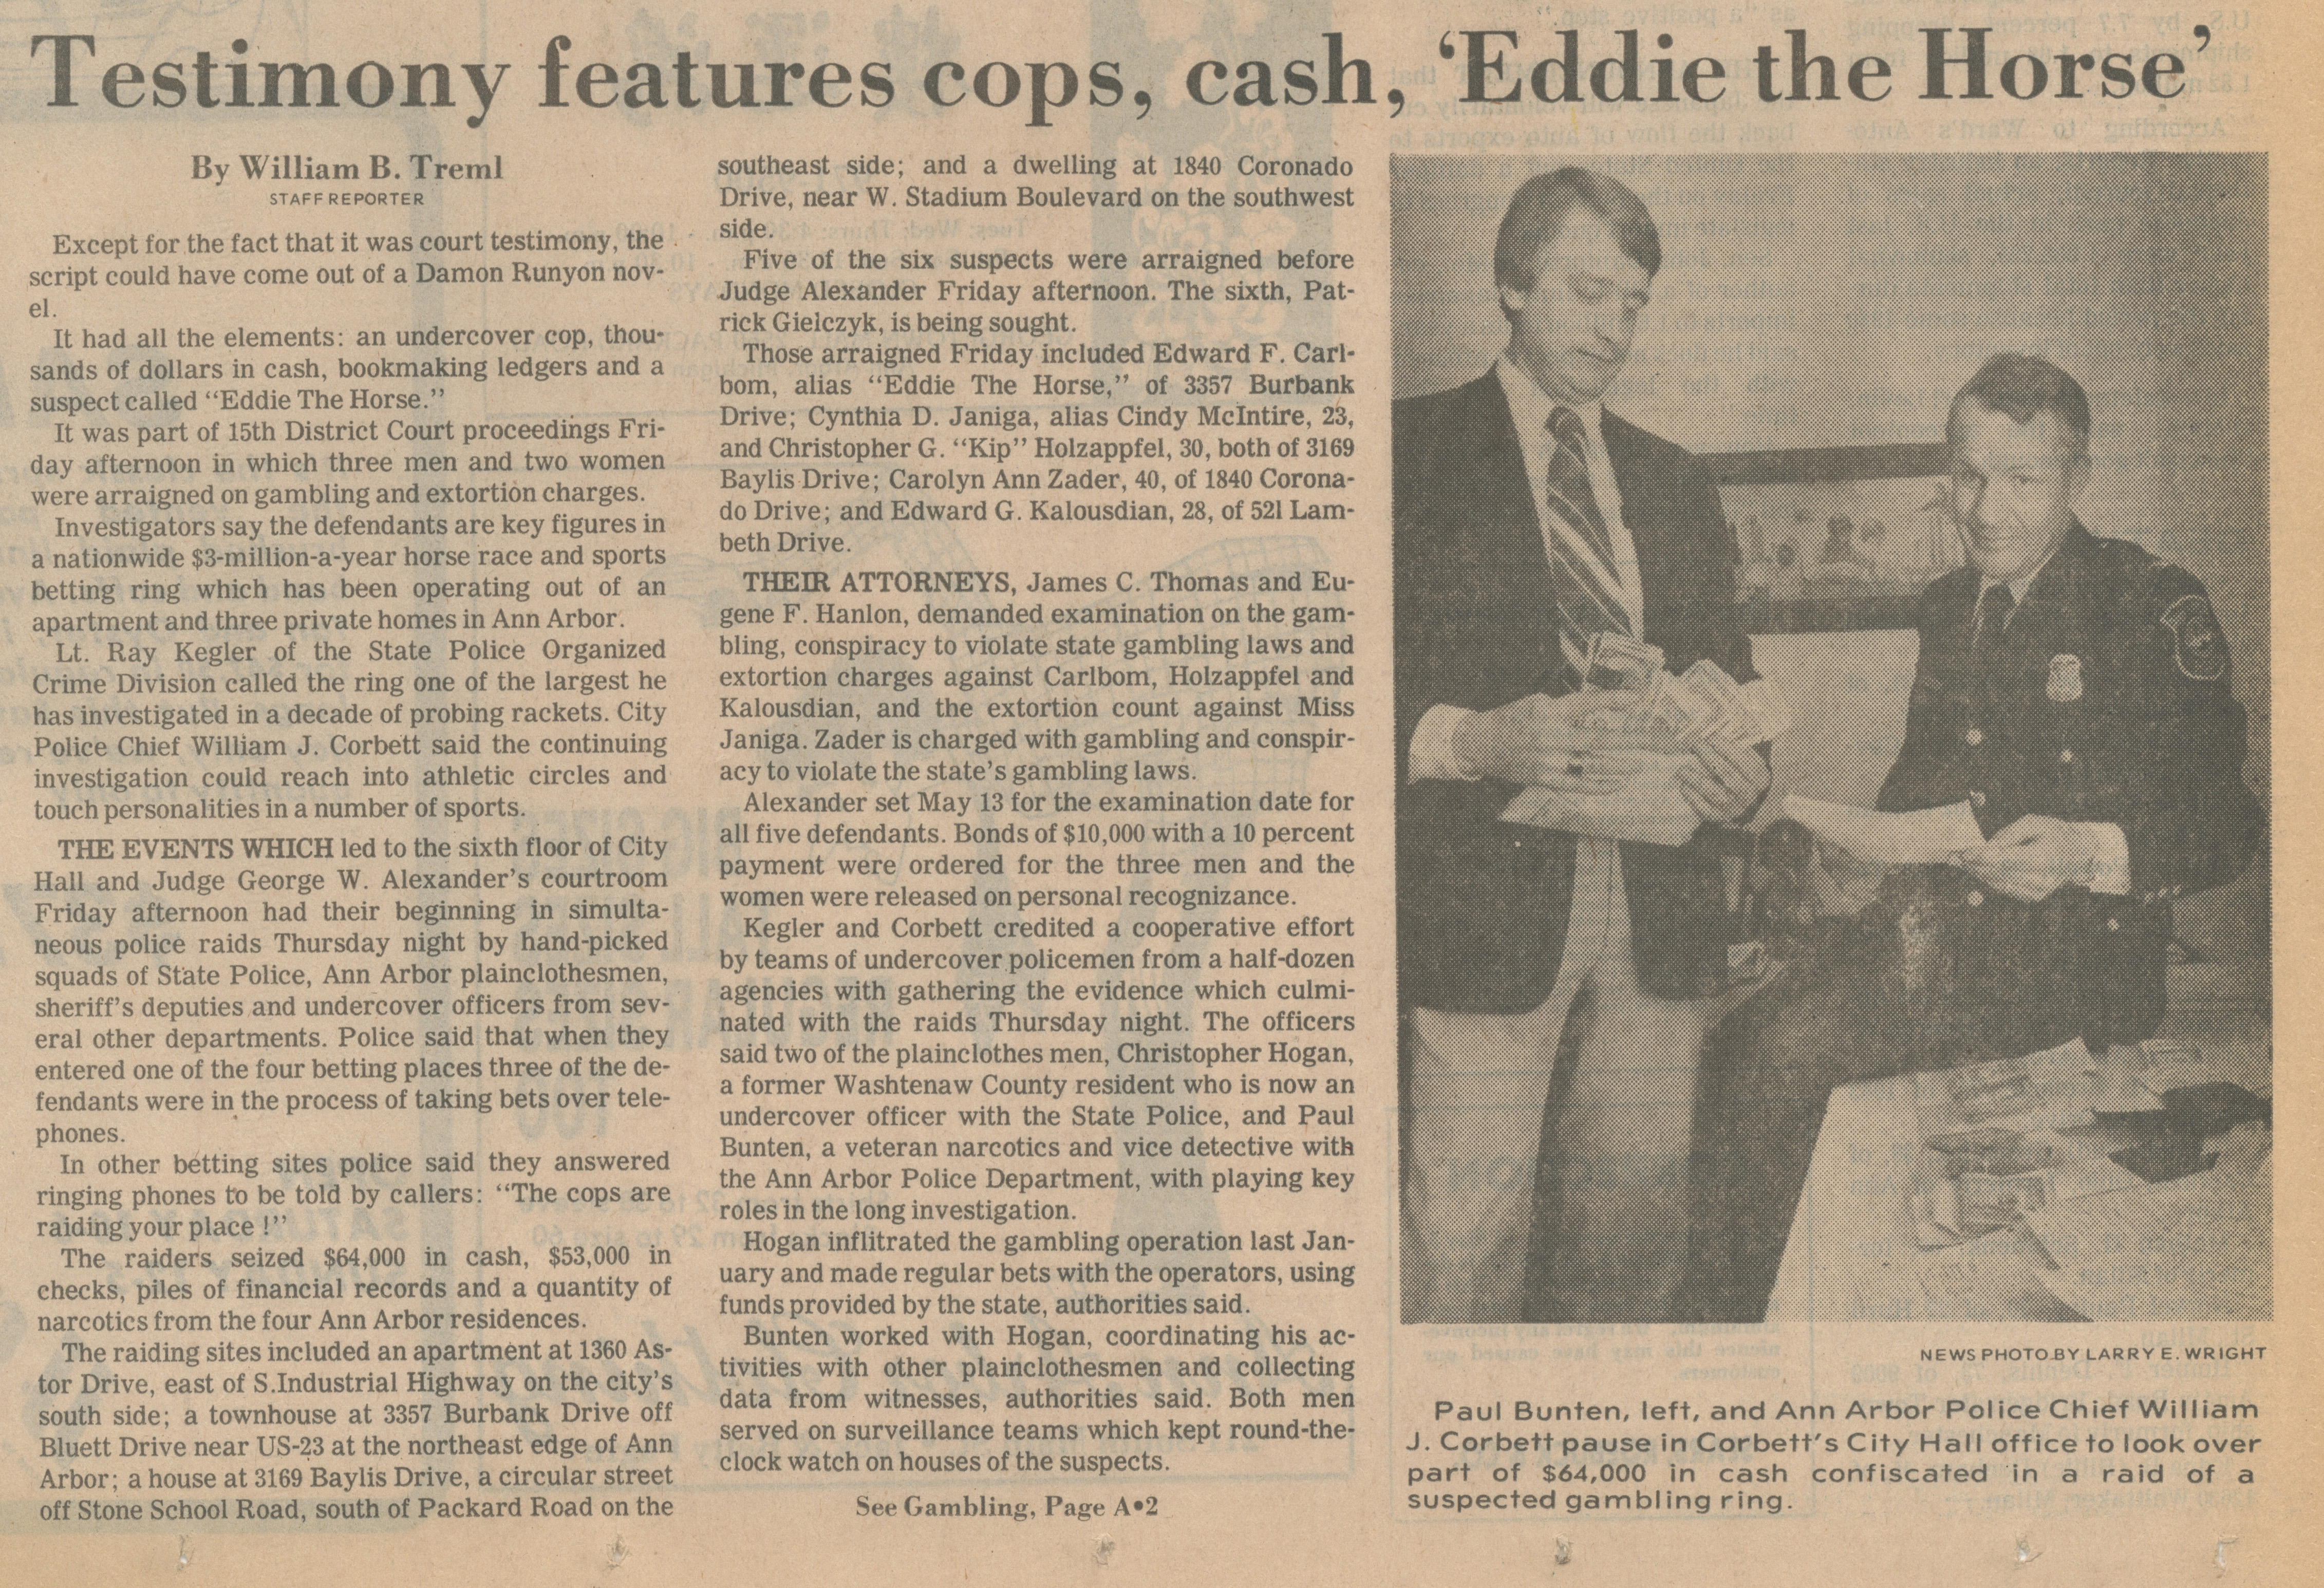 Testimony Features Cops, Cash, 'Eddie the Horse' image